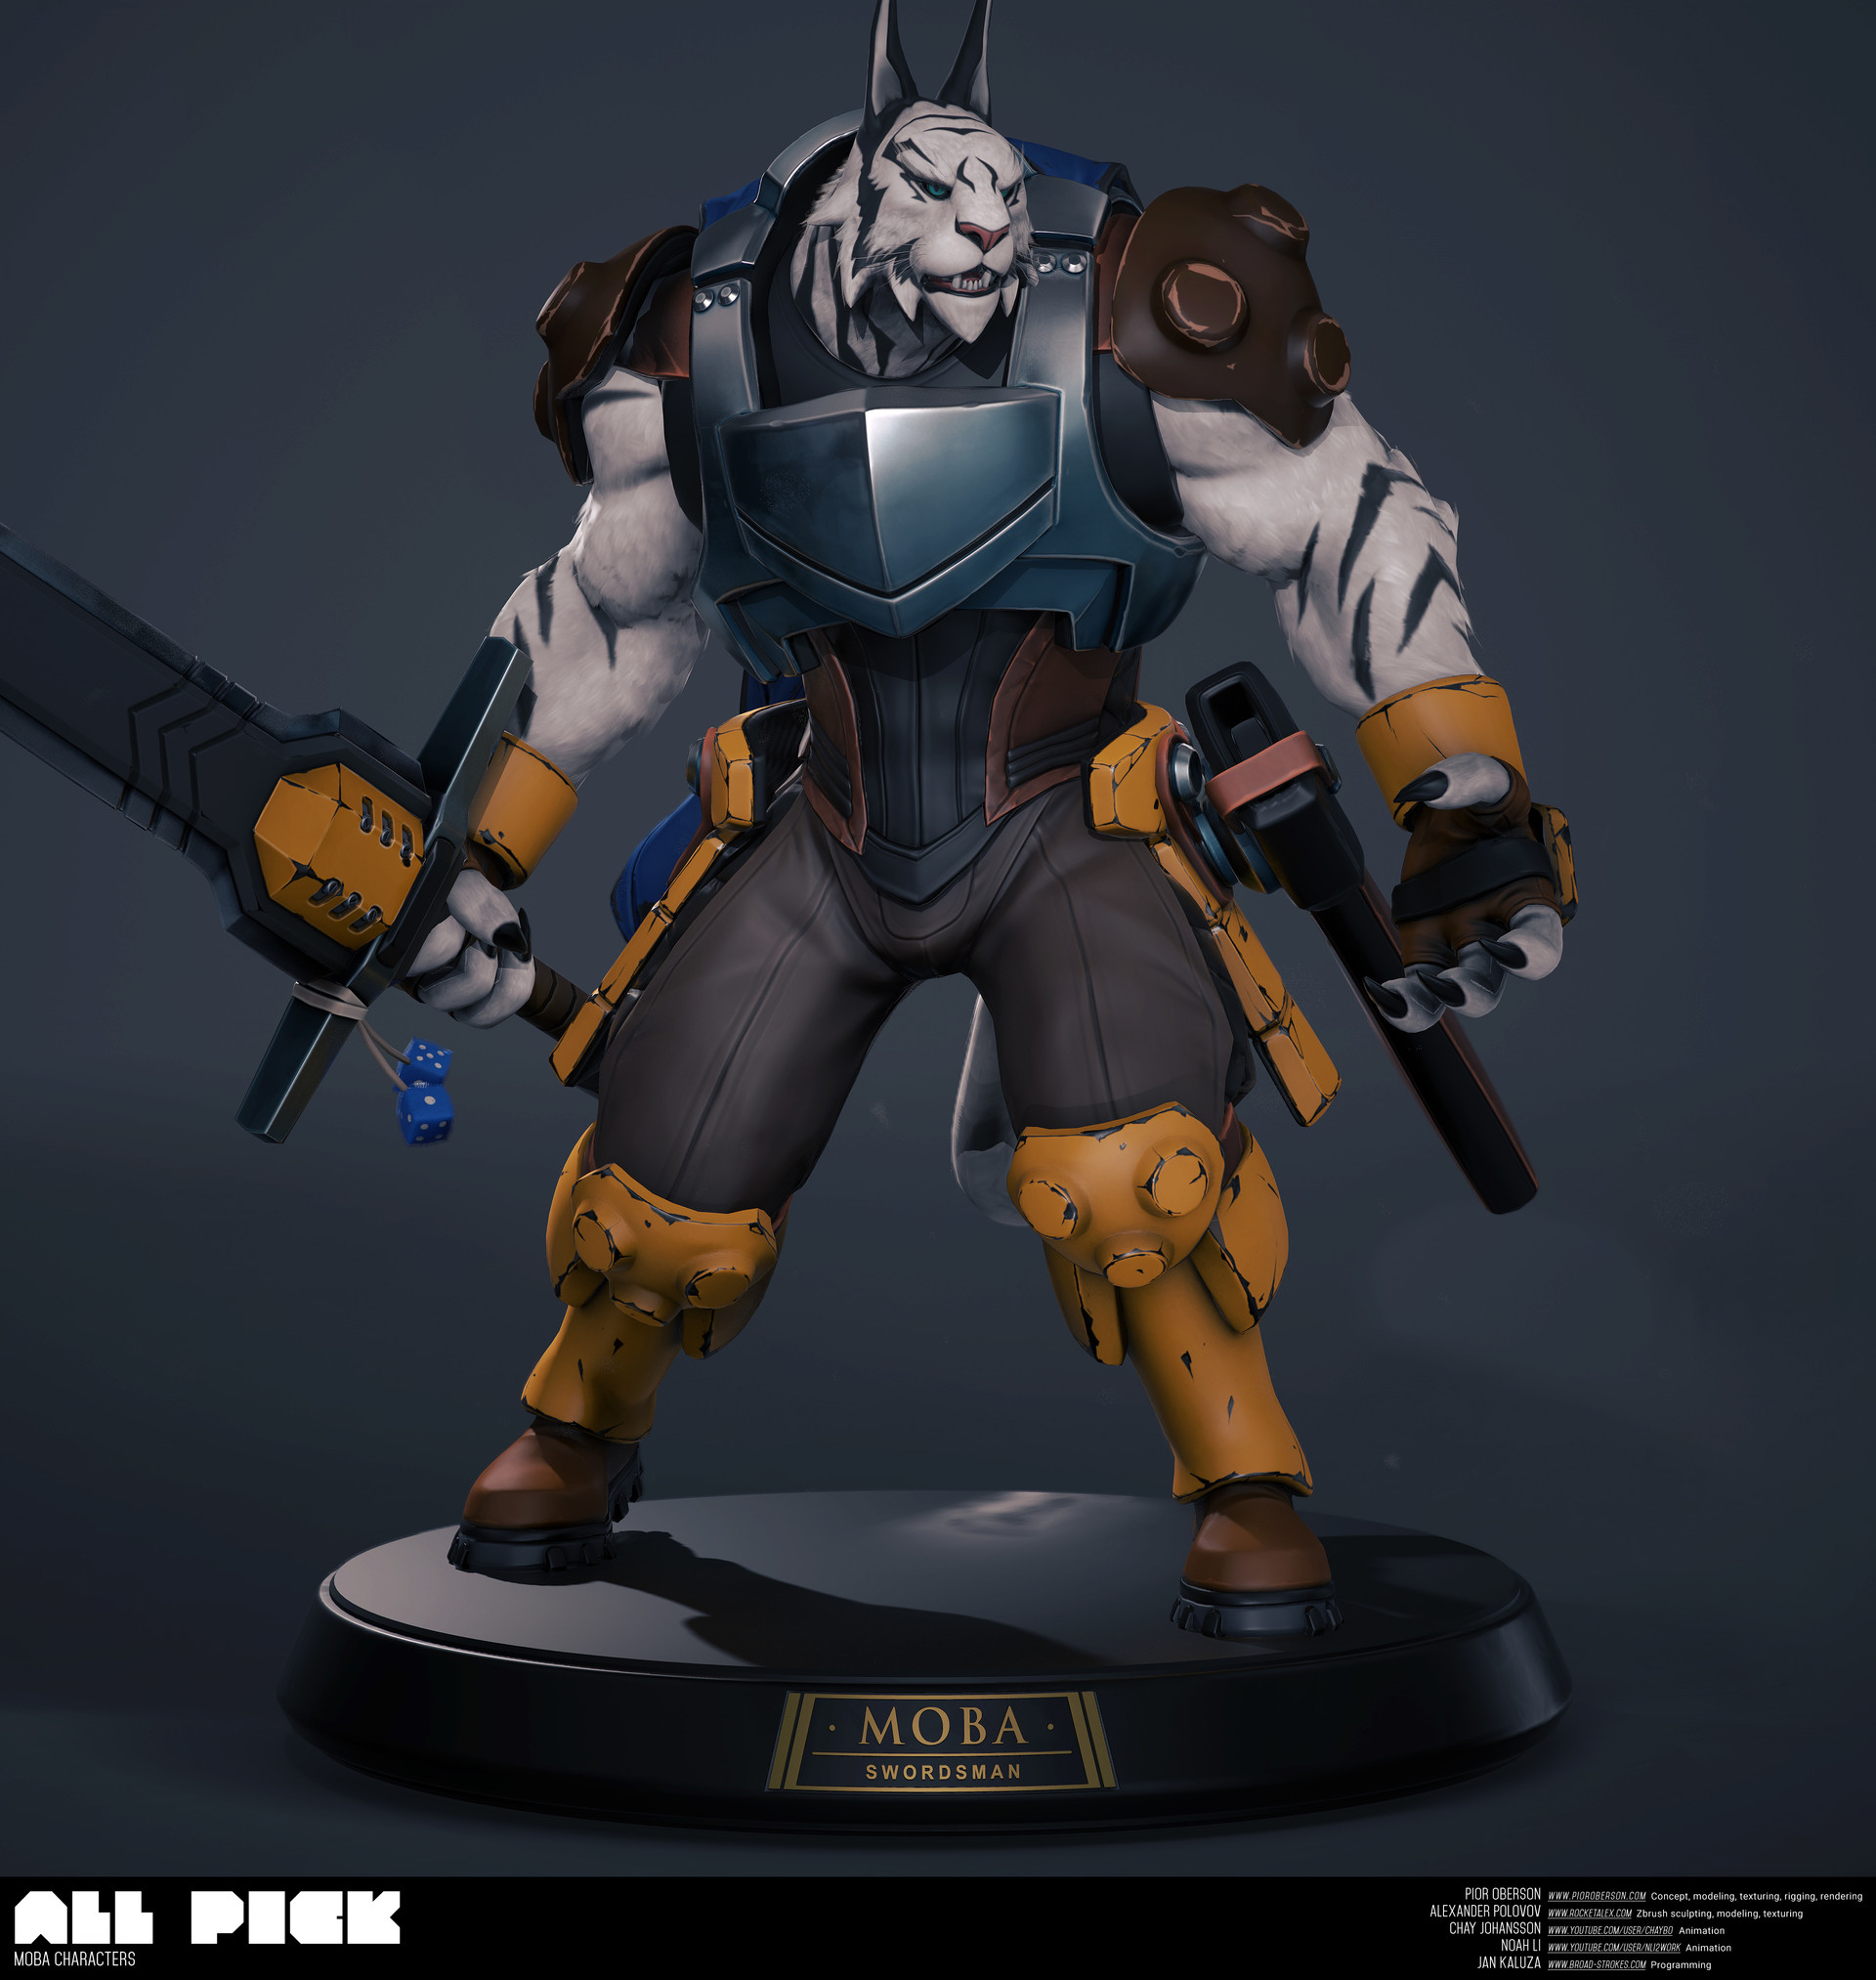 ArtStation - MOBA Swordsman character for UE4 and Unity